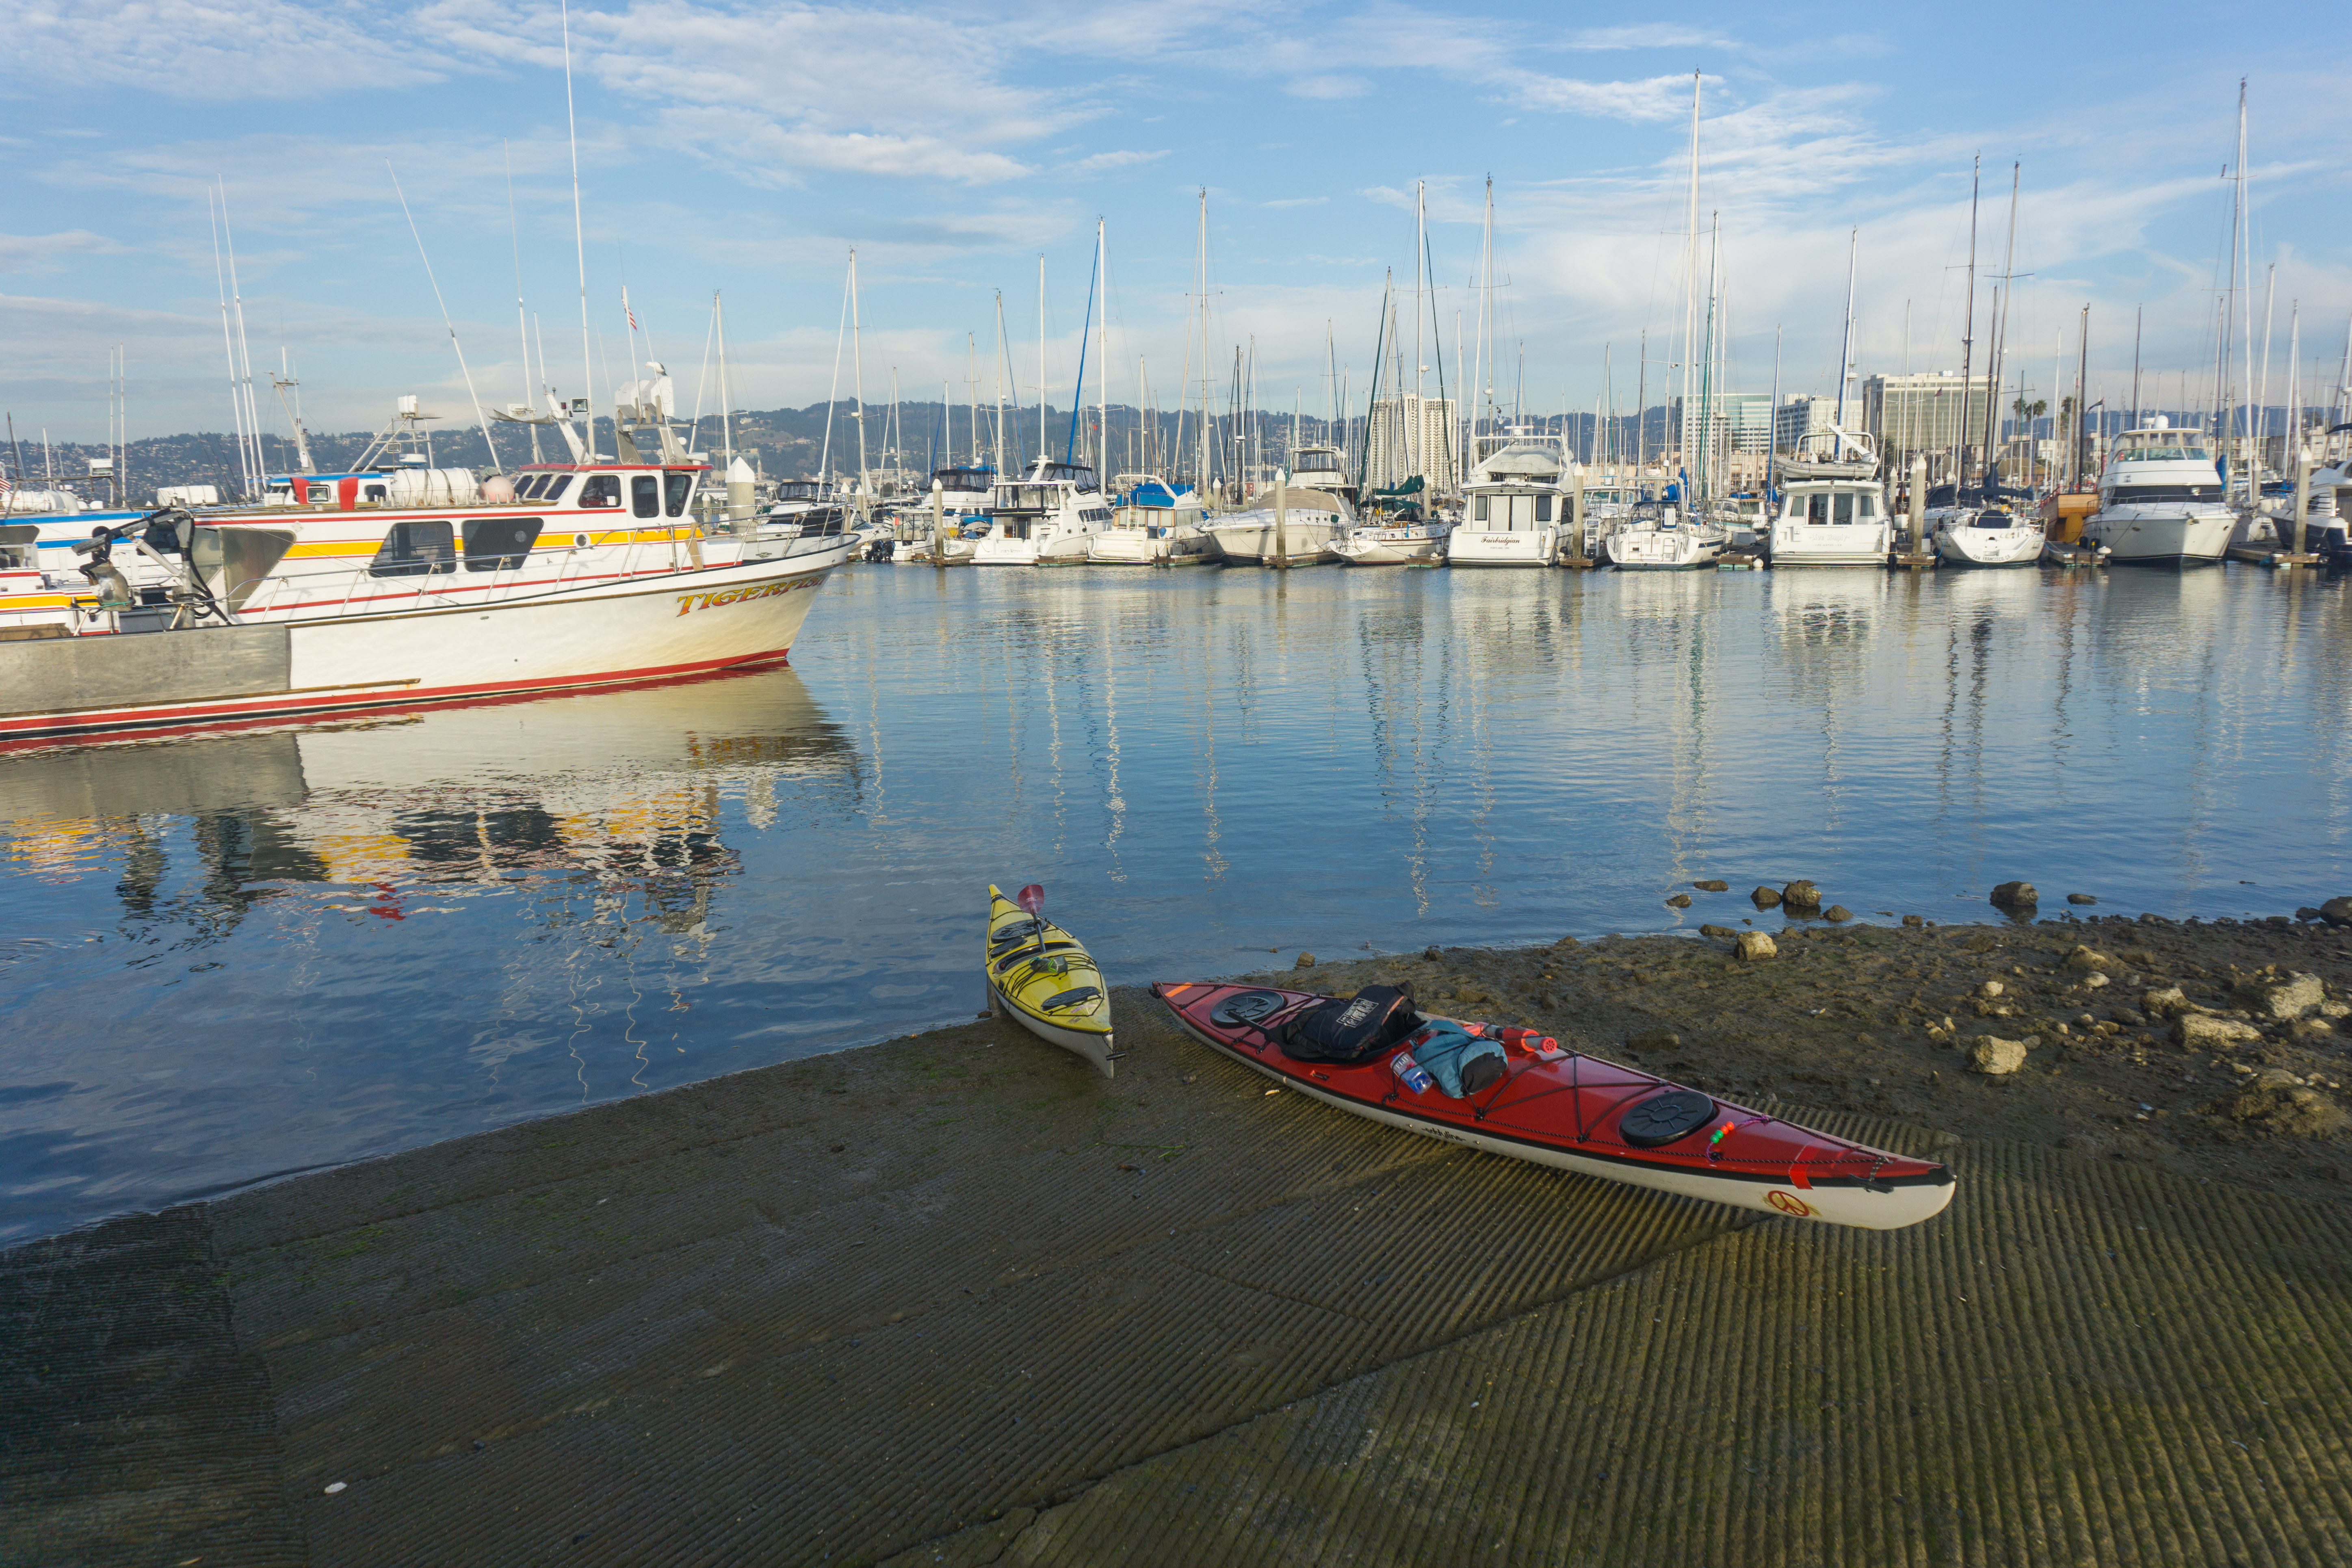 yellow and red kayaks sitting on concrete boat ramp, with many sailboats moored in the marina just offshore